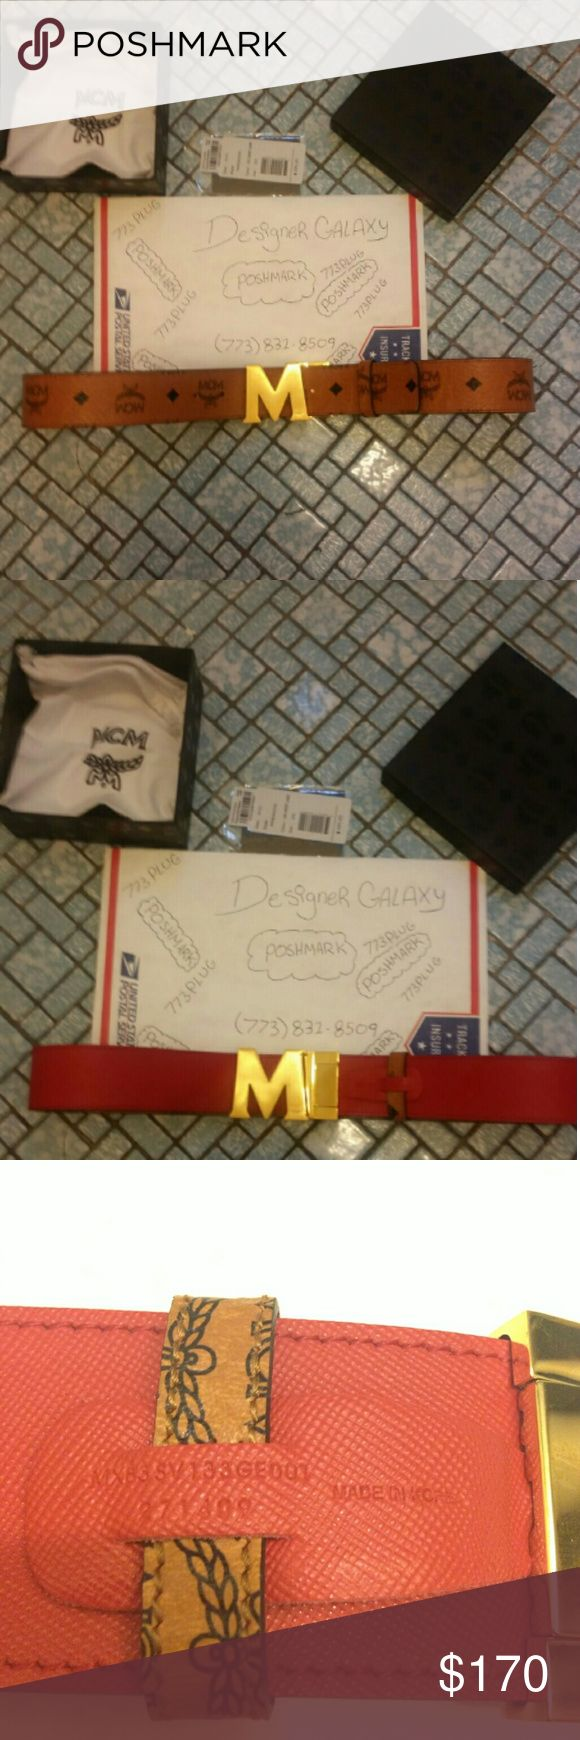 MCM belt 100% authentic. Cut to size. I have more designer items available. Want for $140? Text me (773) 831 8509 MCM Accessories Belts